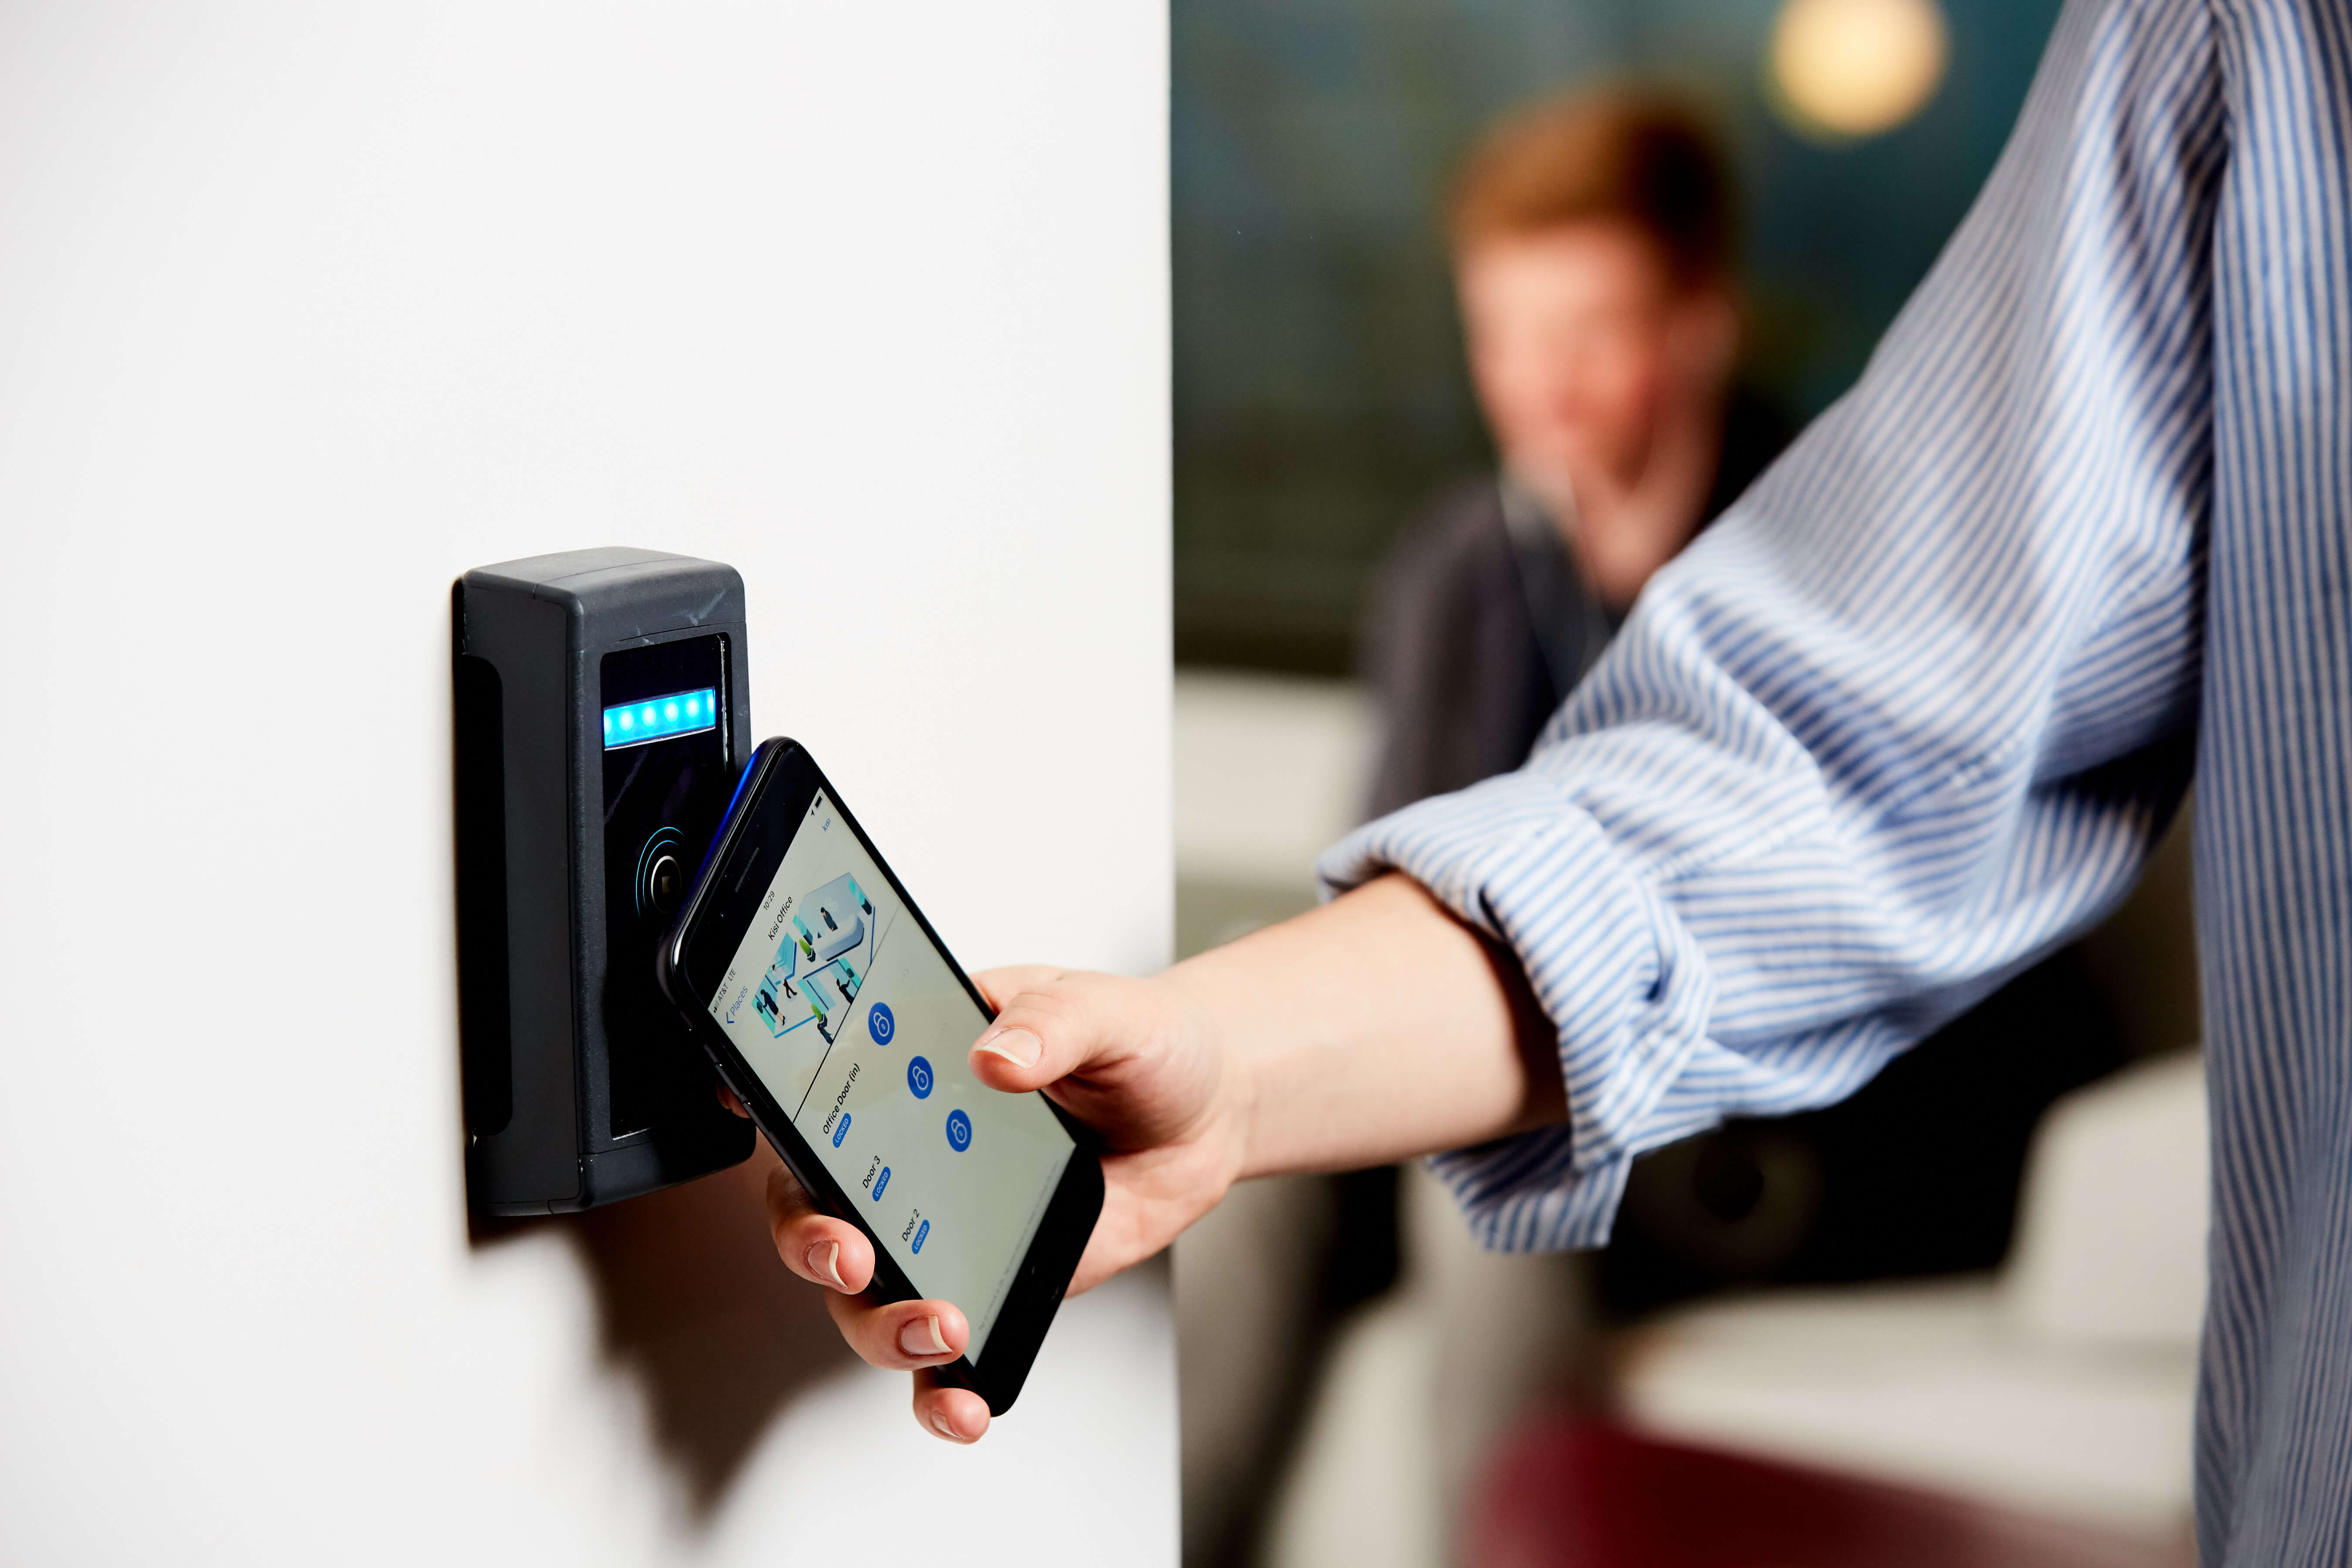 Mobile access control system